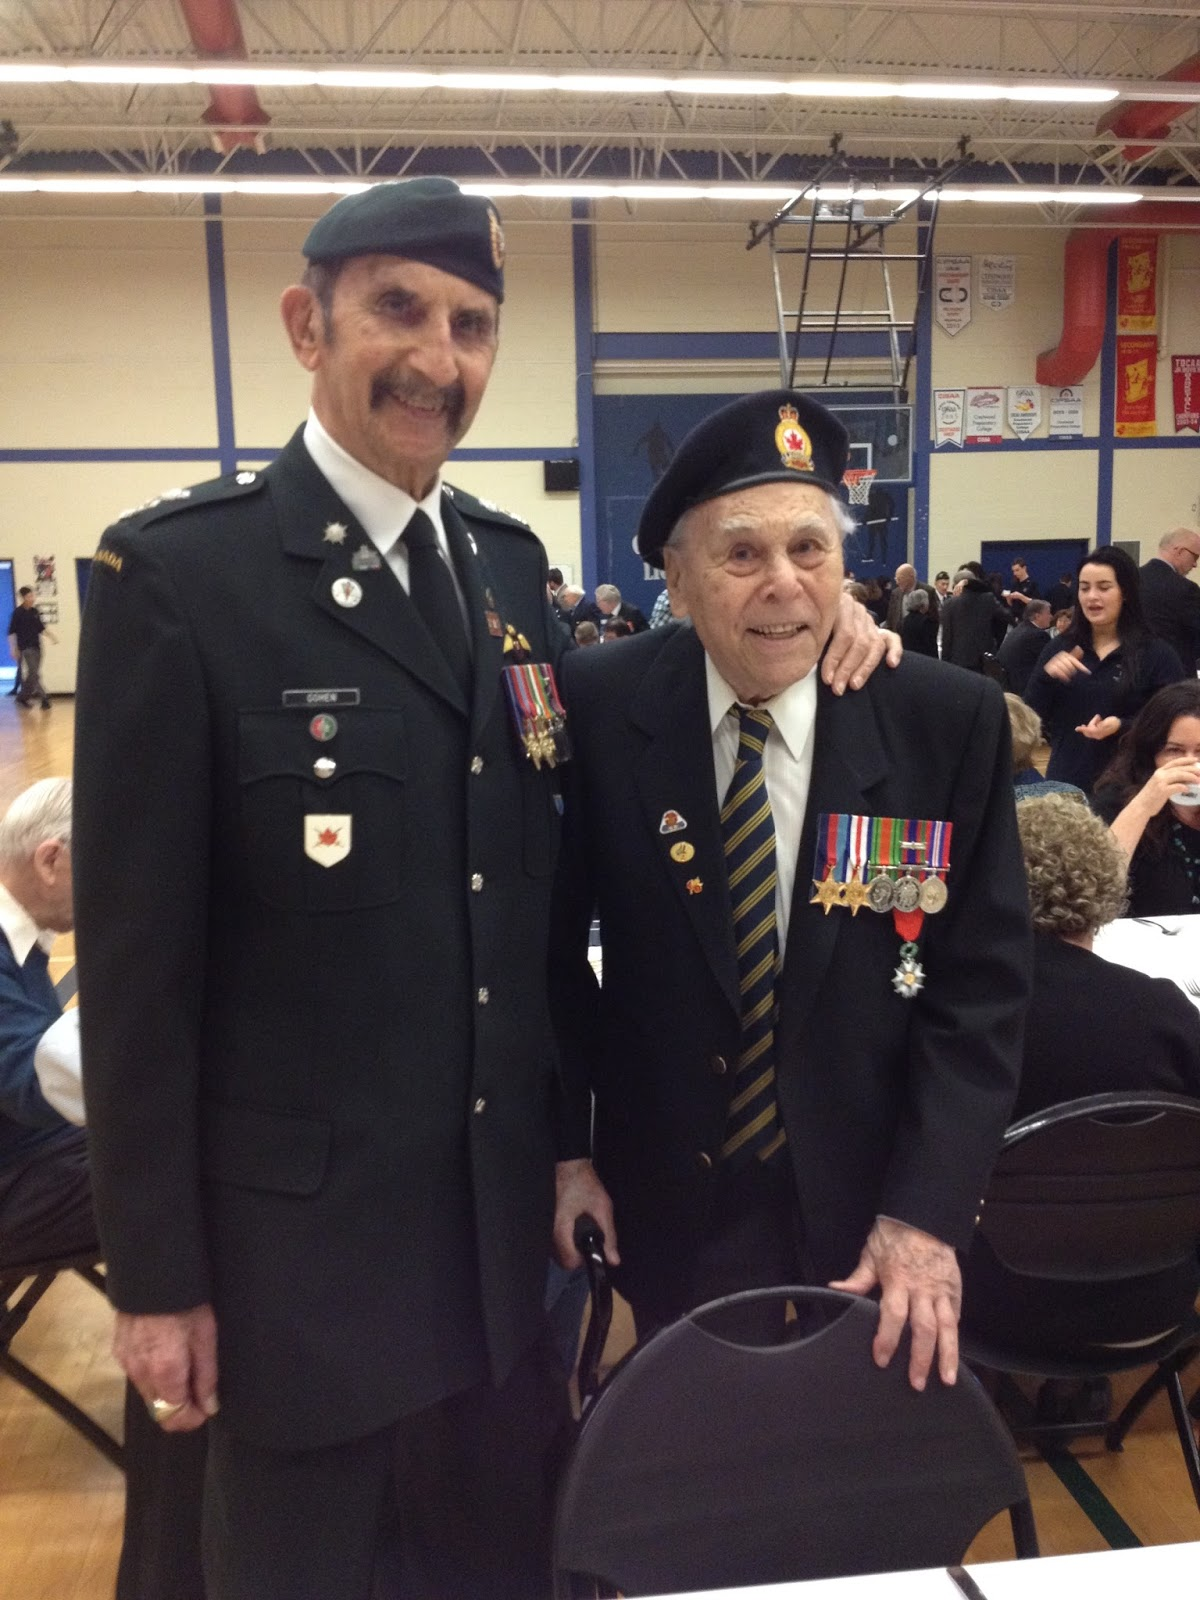 crestwood jewish single men A real-life double threat: two jewish wwii veterans meet at a tribute breakfast at crestwood preparatory college in toronto may 17, 2017 leave a comment norman cohen and lorne winer (ellin bessner/photo) ellin with norman cohen and lorne winer (photo joan cohen).